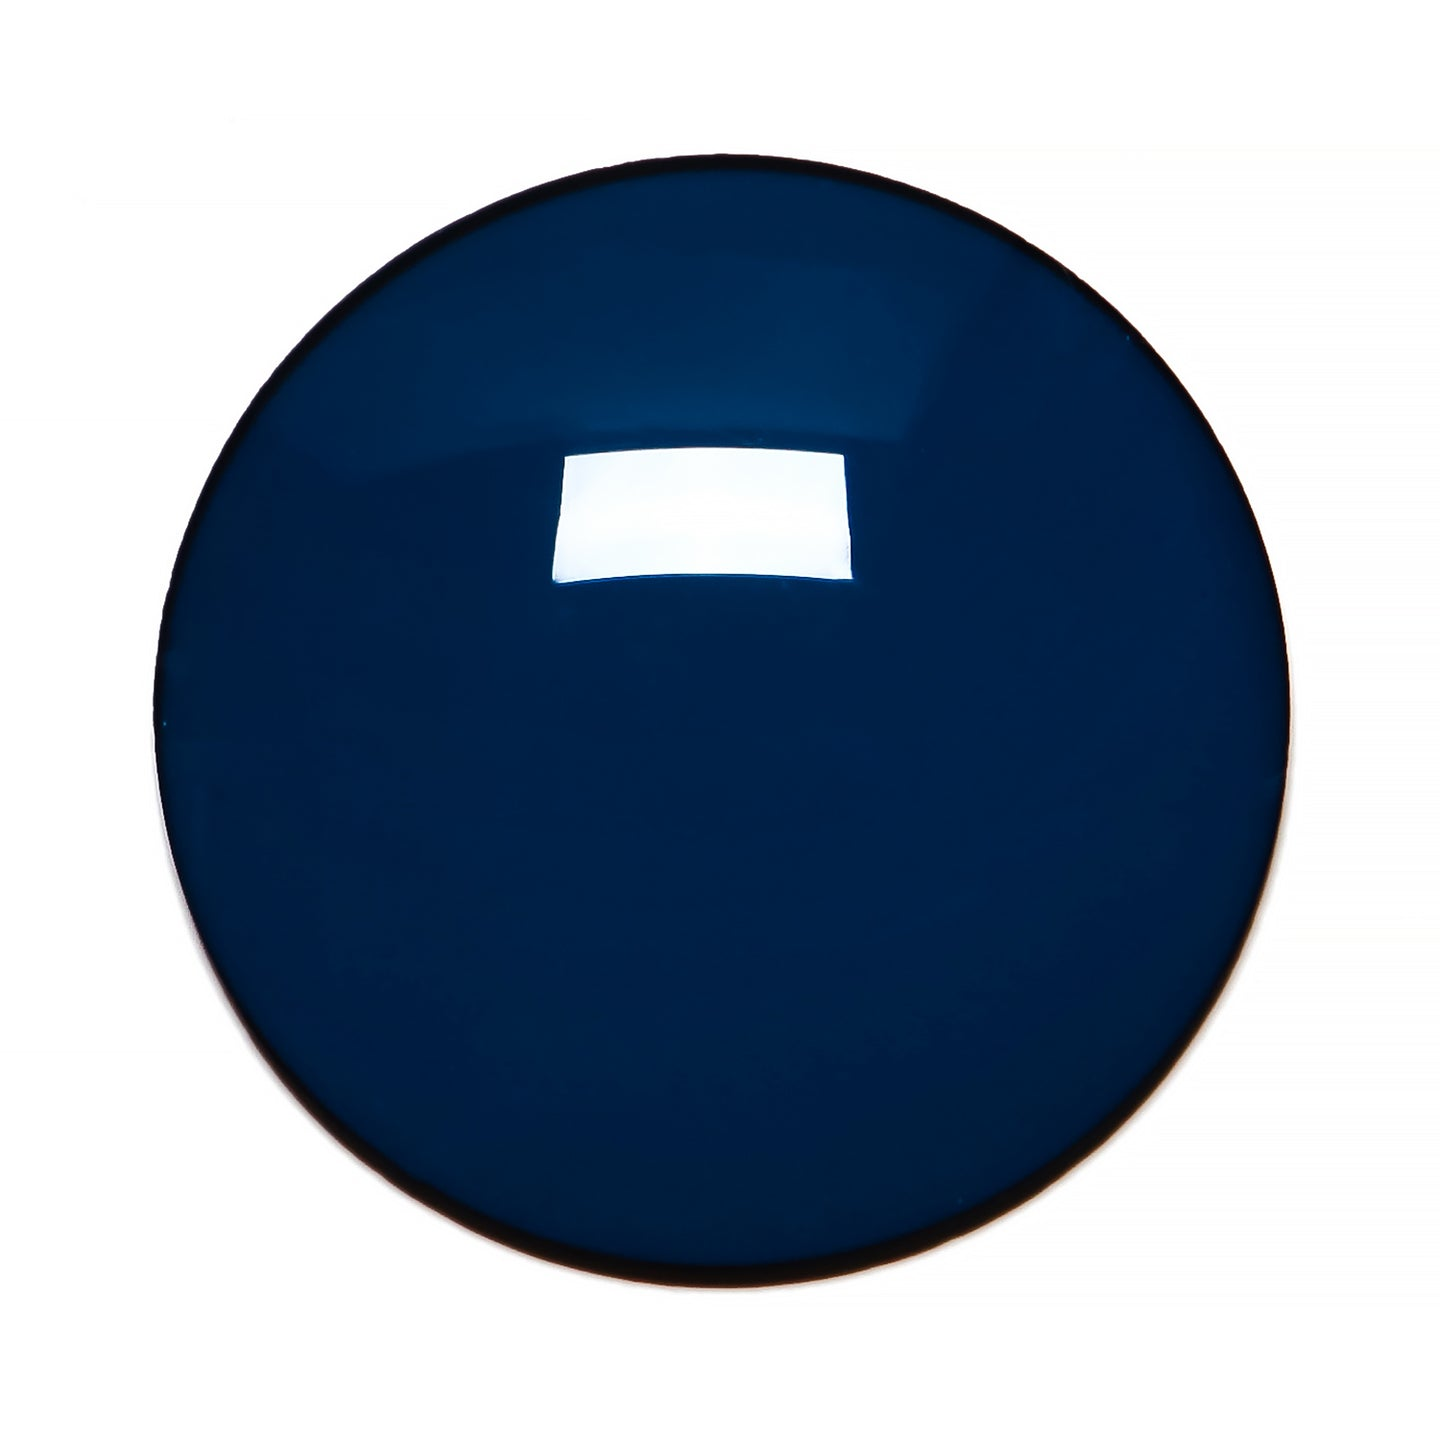 014 - Deep Blue Solid Regular Curve Lens